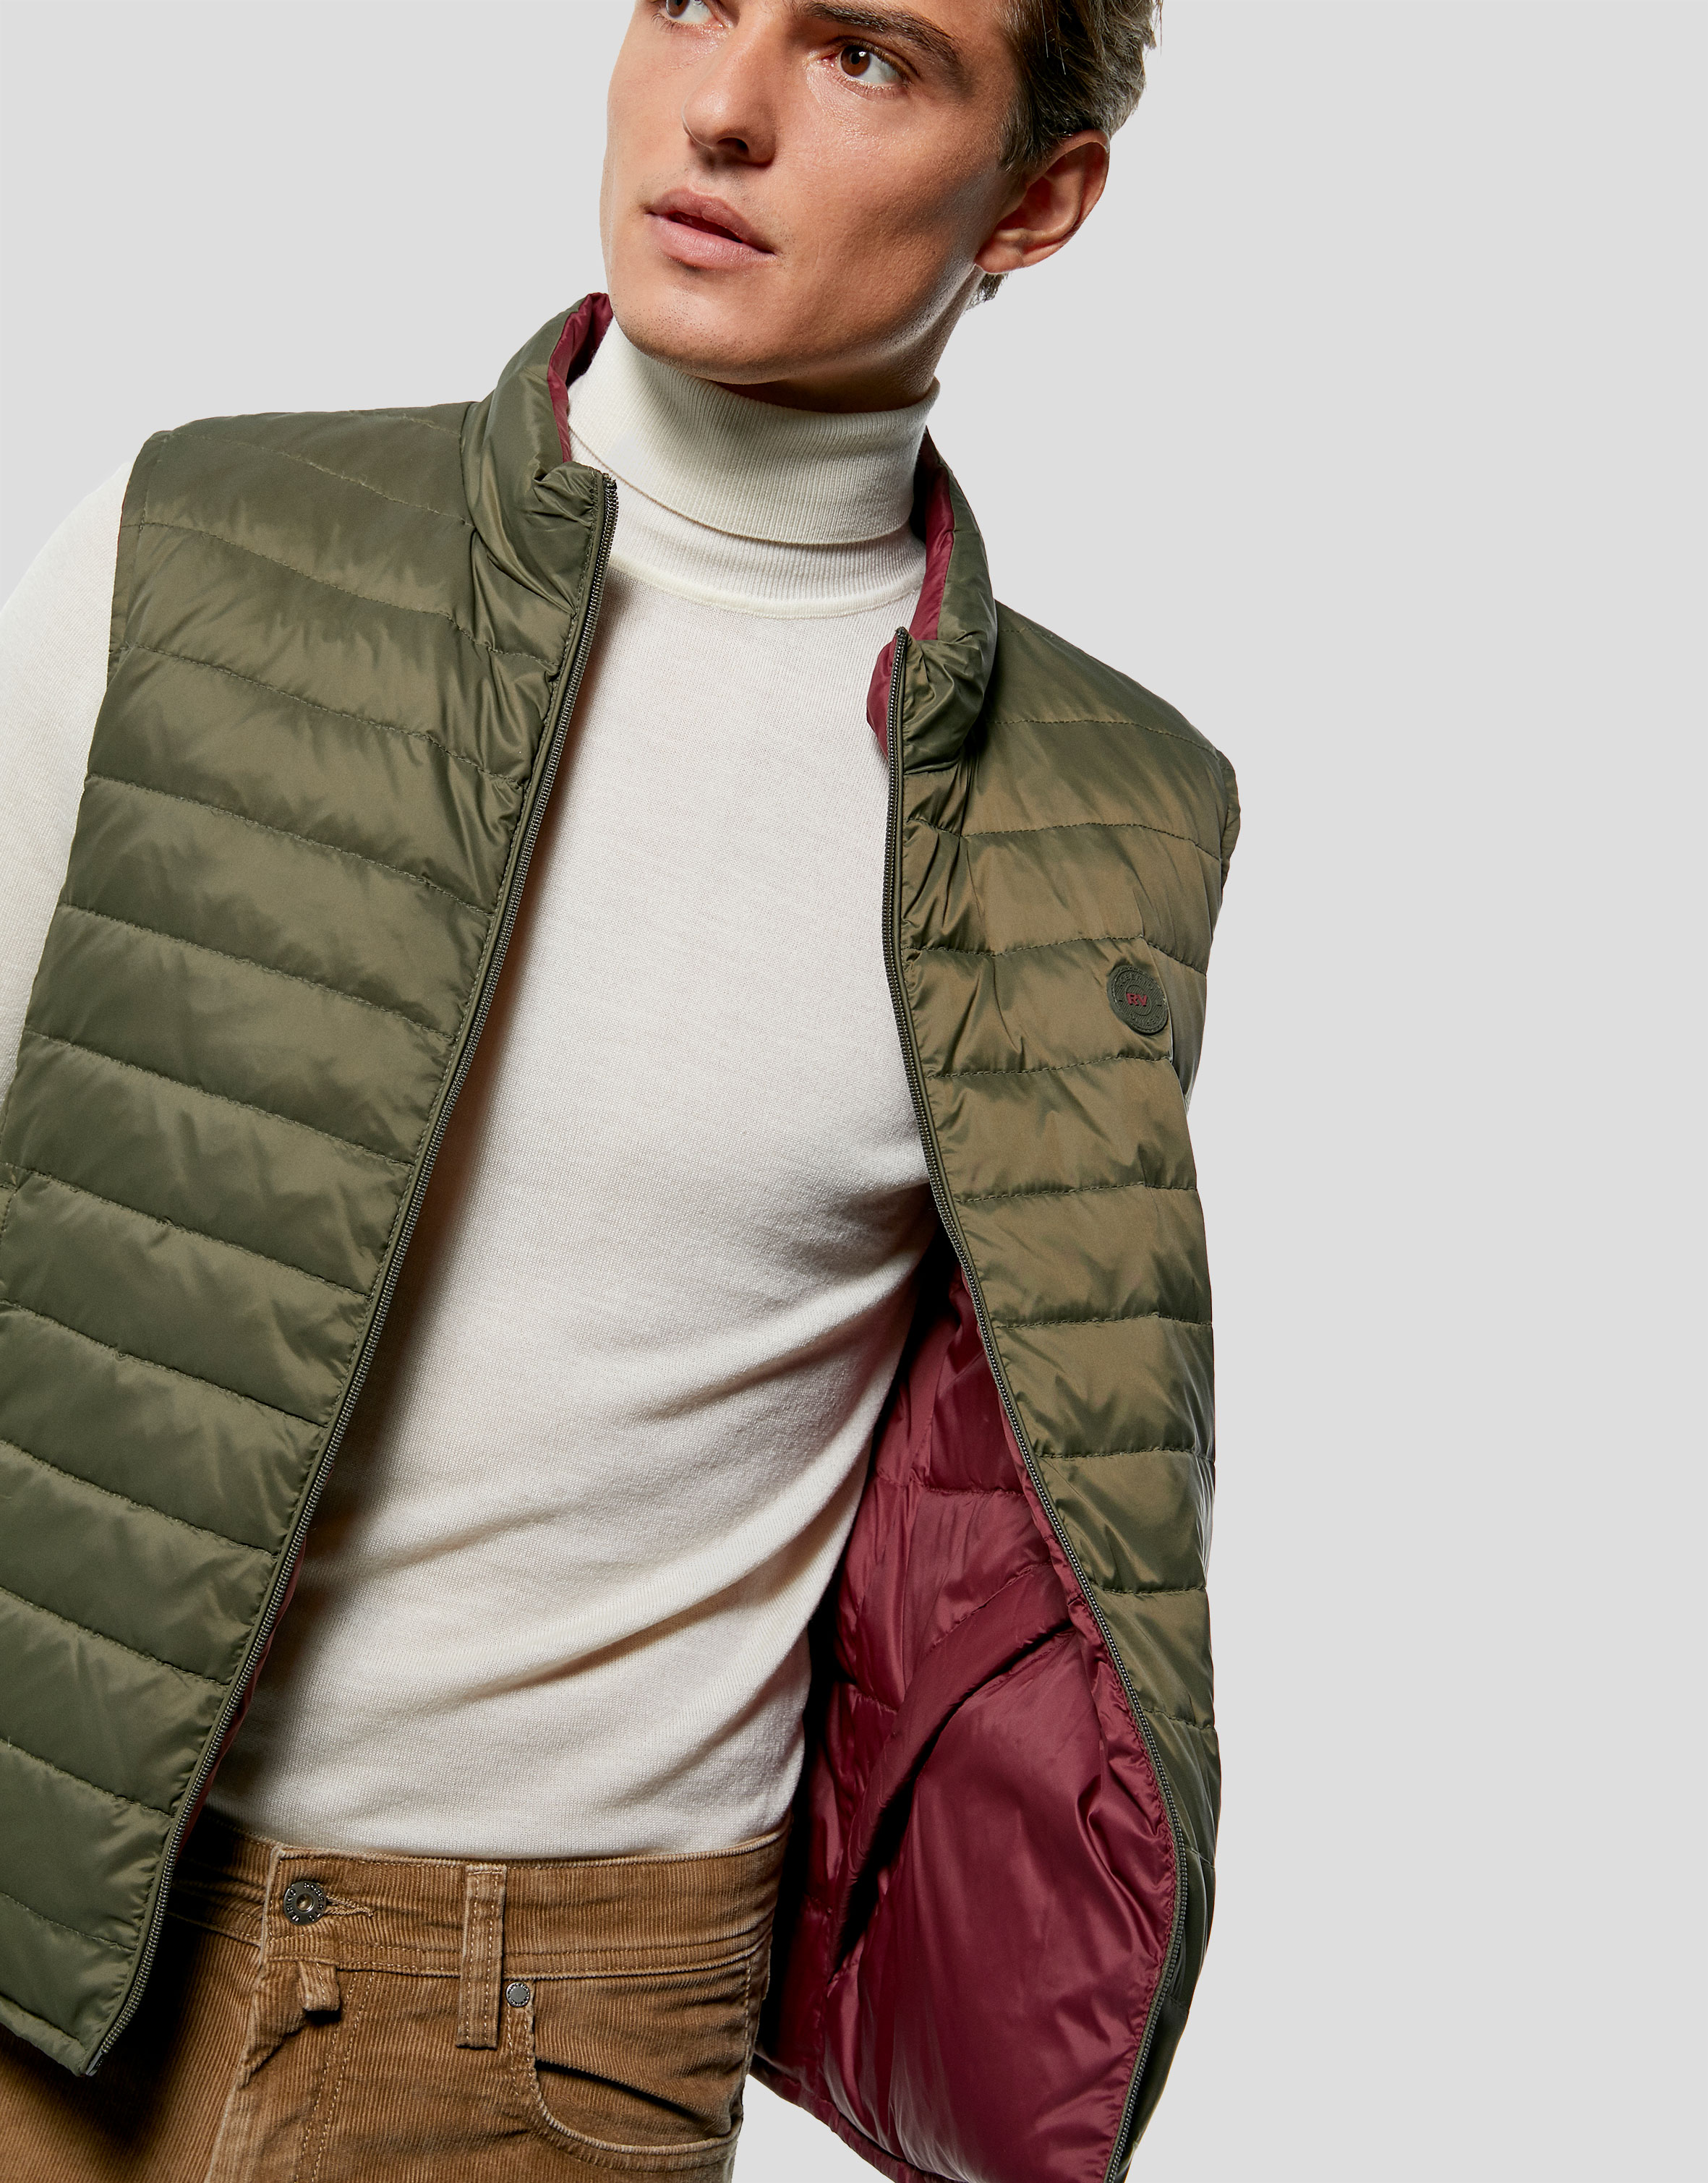 Khaki and burgundy, reversible, sport vest